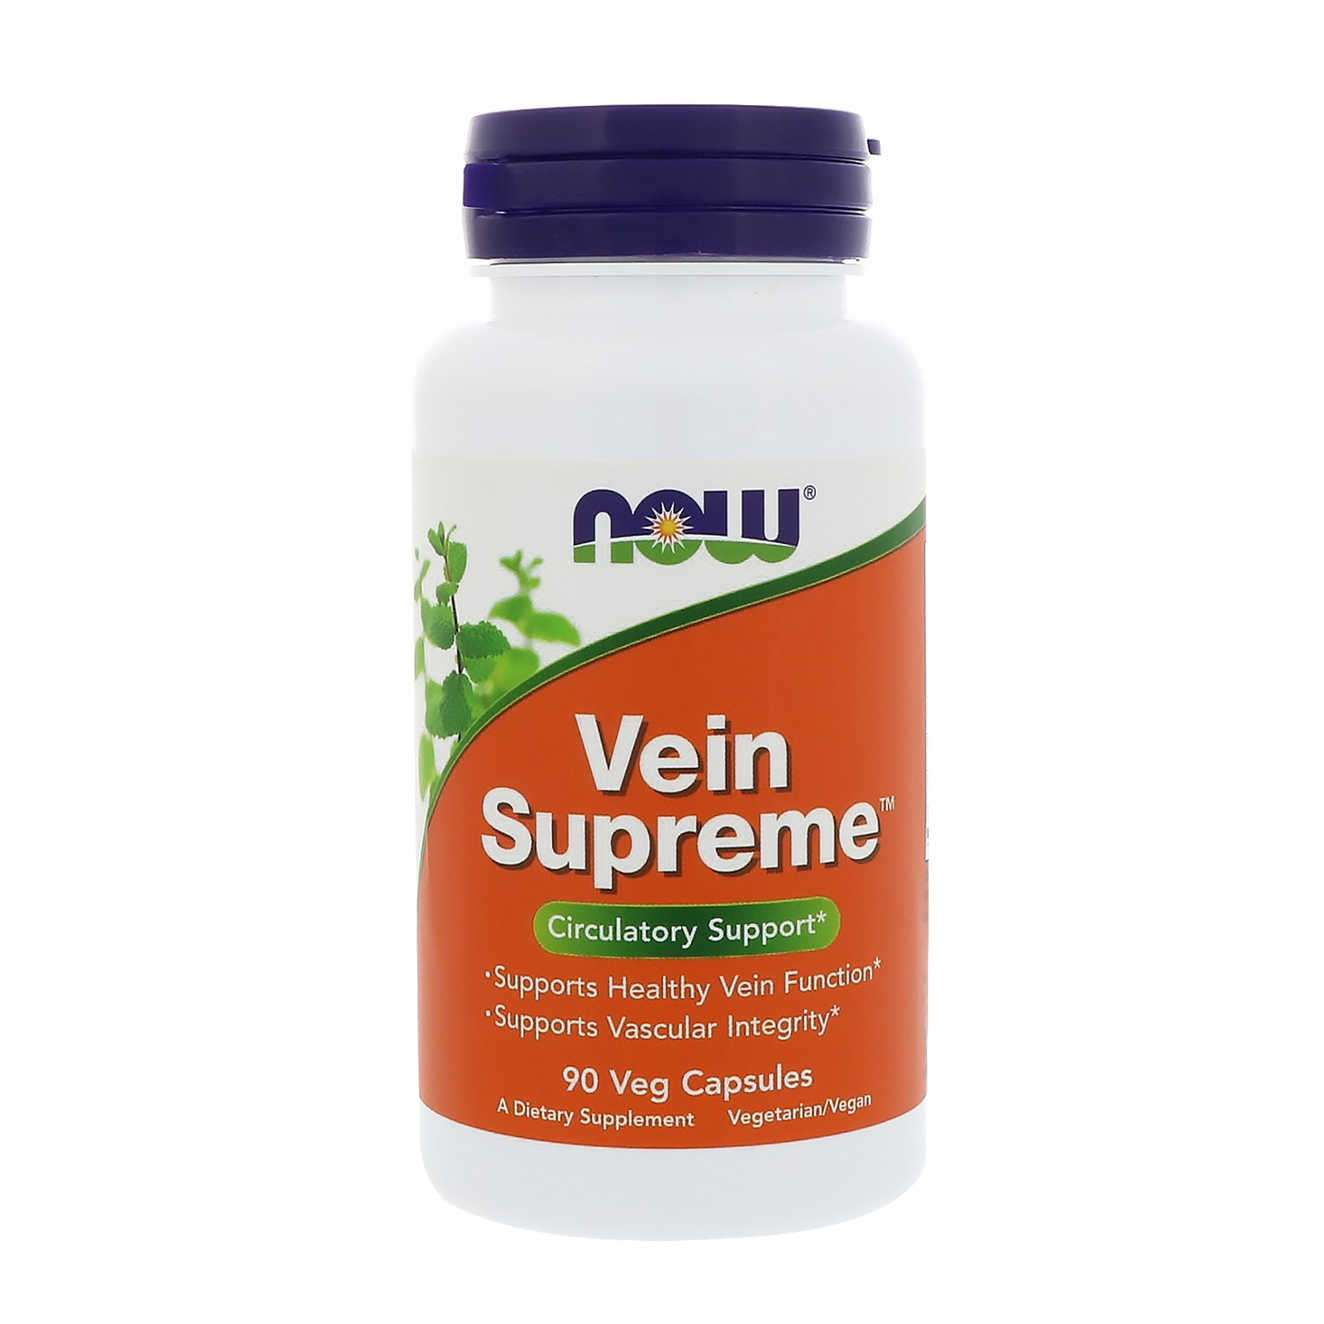 VEIN SUPREME™ - 90 veg caps